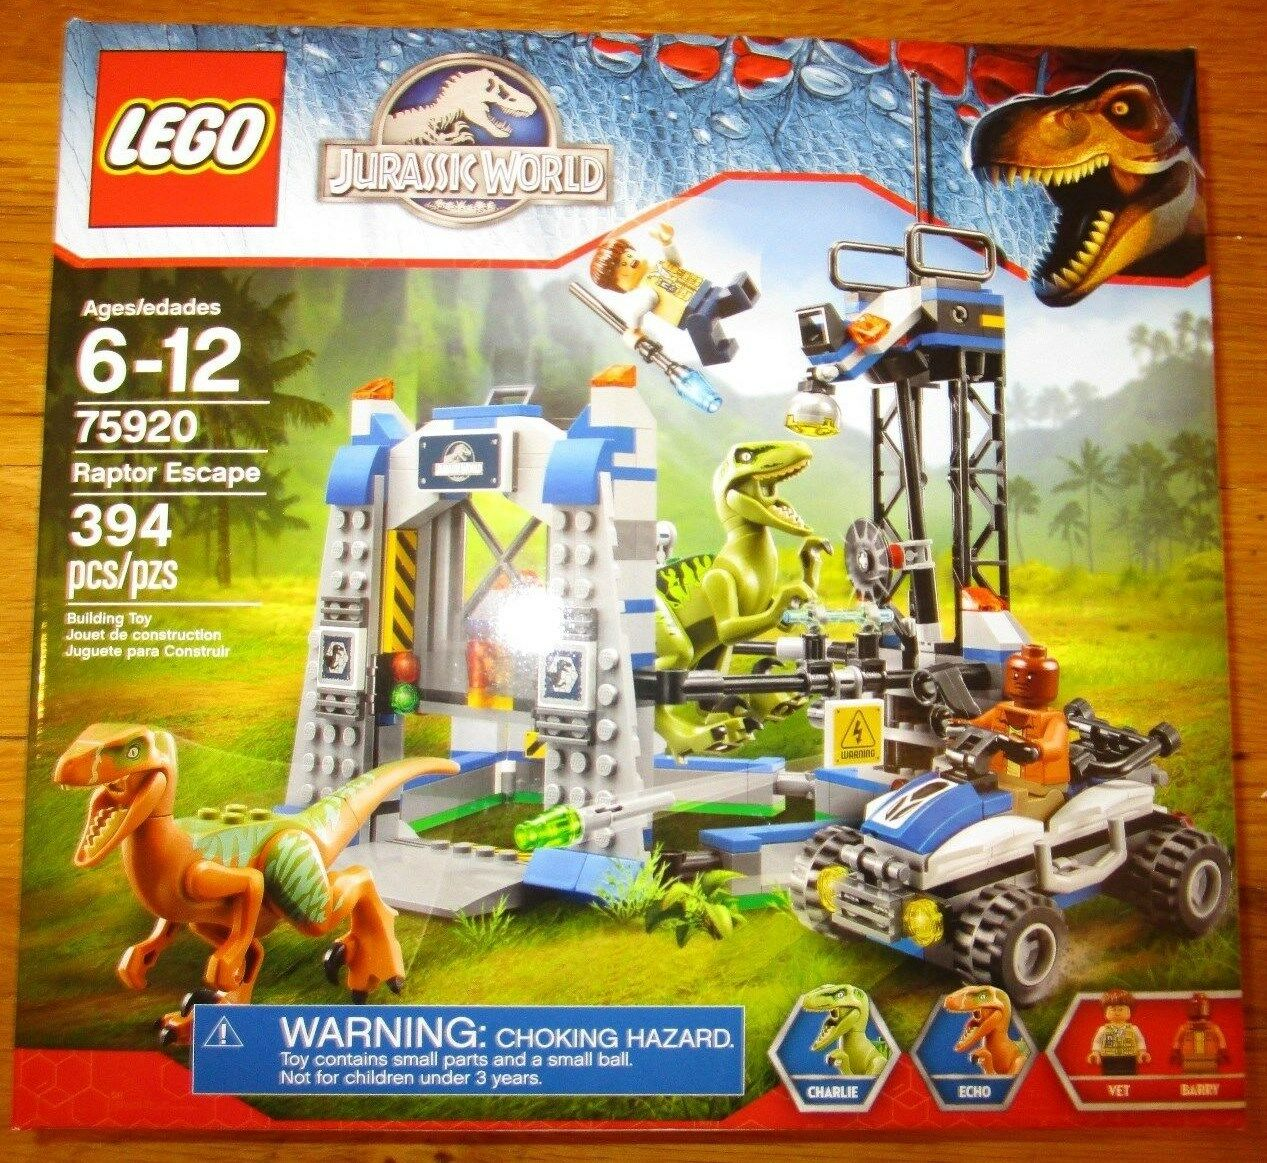 Lego Jurassic World WALMART  EXCLUSIVE Raptor Escape 394 Pcs Set 75920 NEUF  nouvelle exclusivité haut de gamme